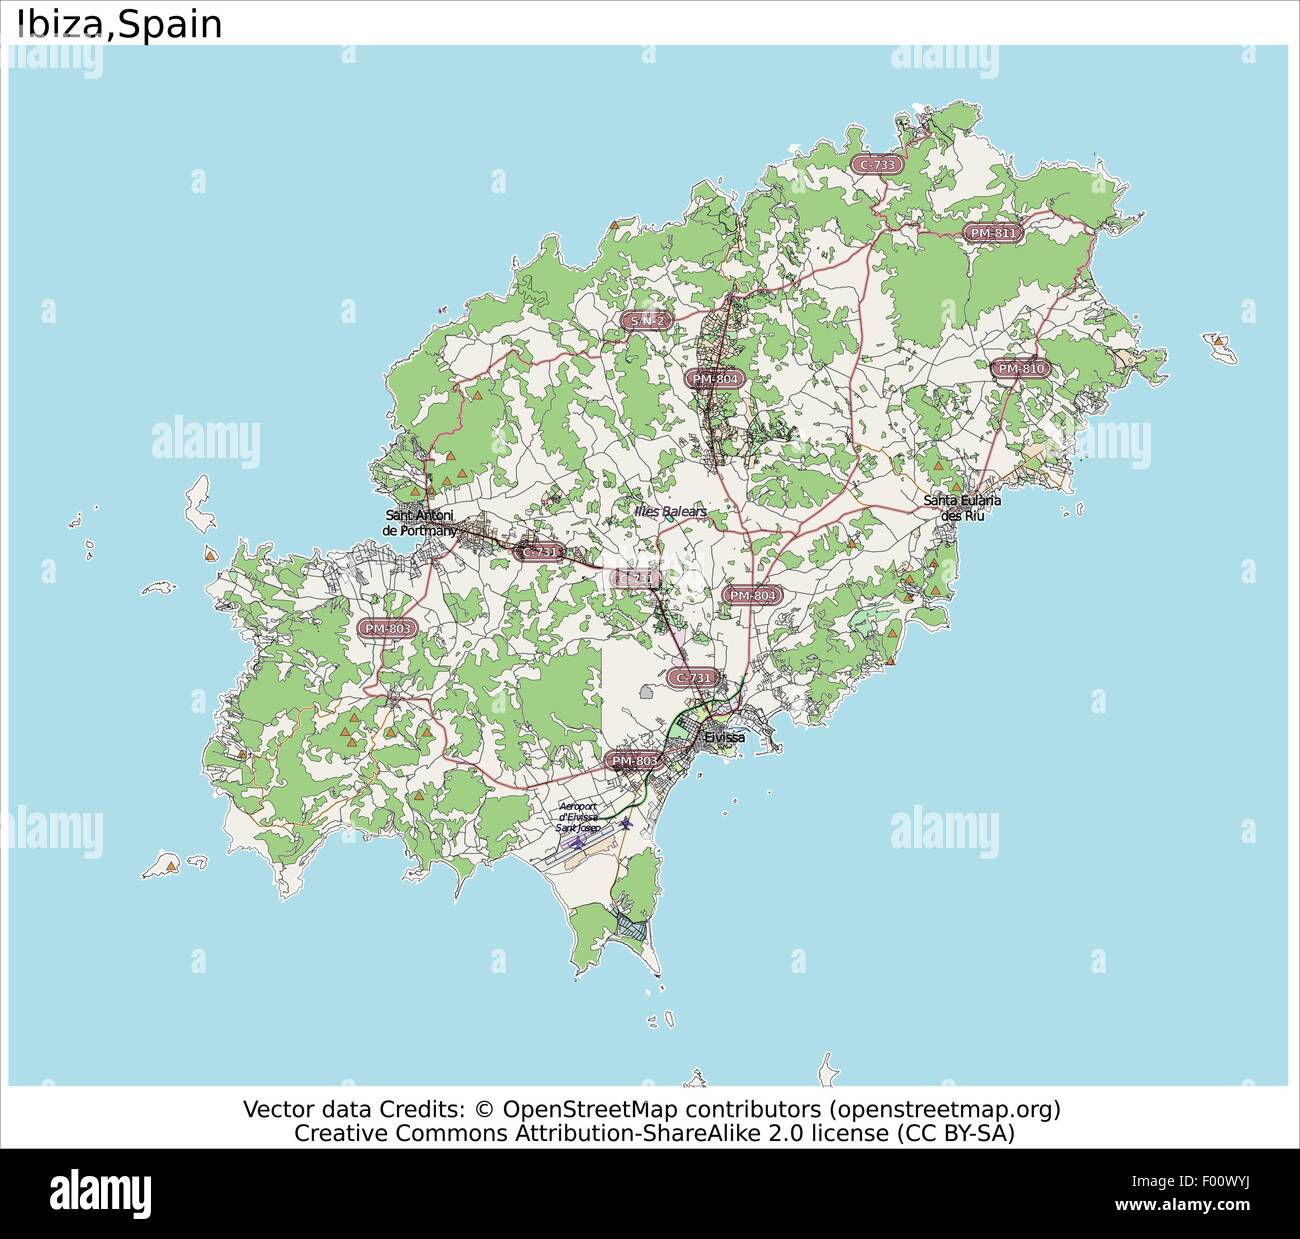 Ibiza Spain Country city island state location map Stock Vector Art